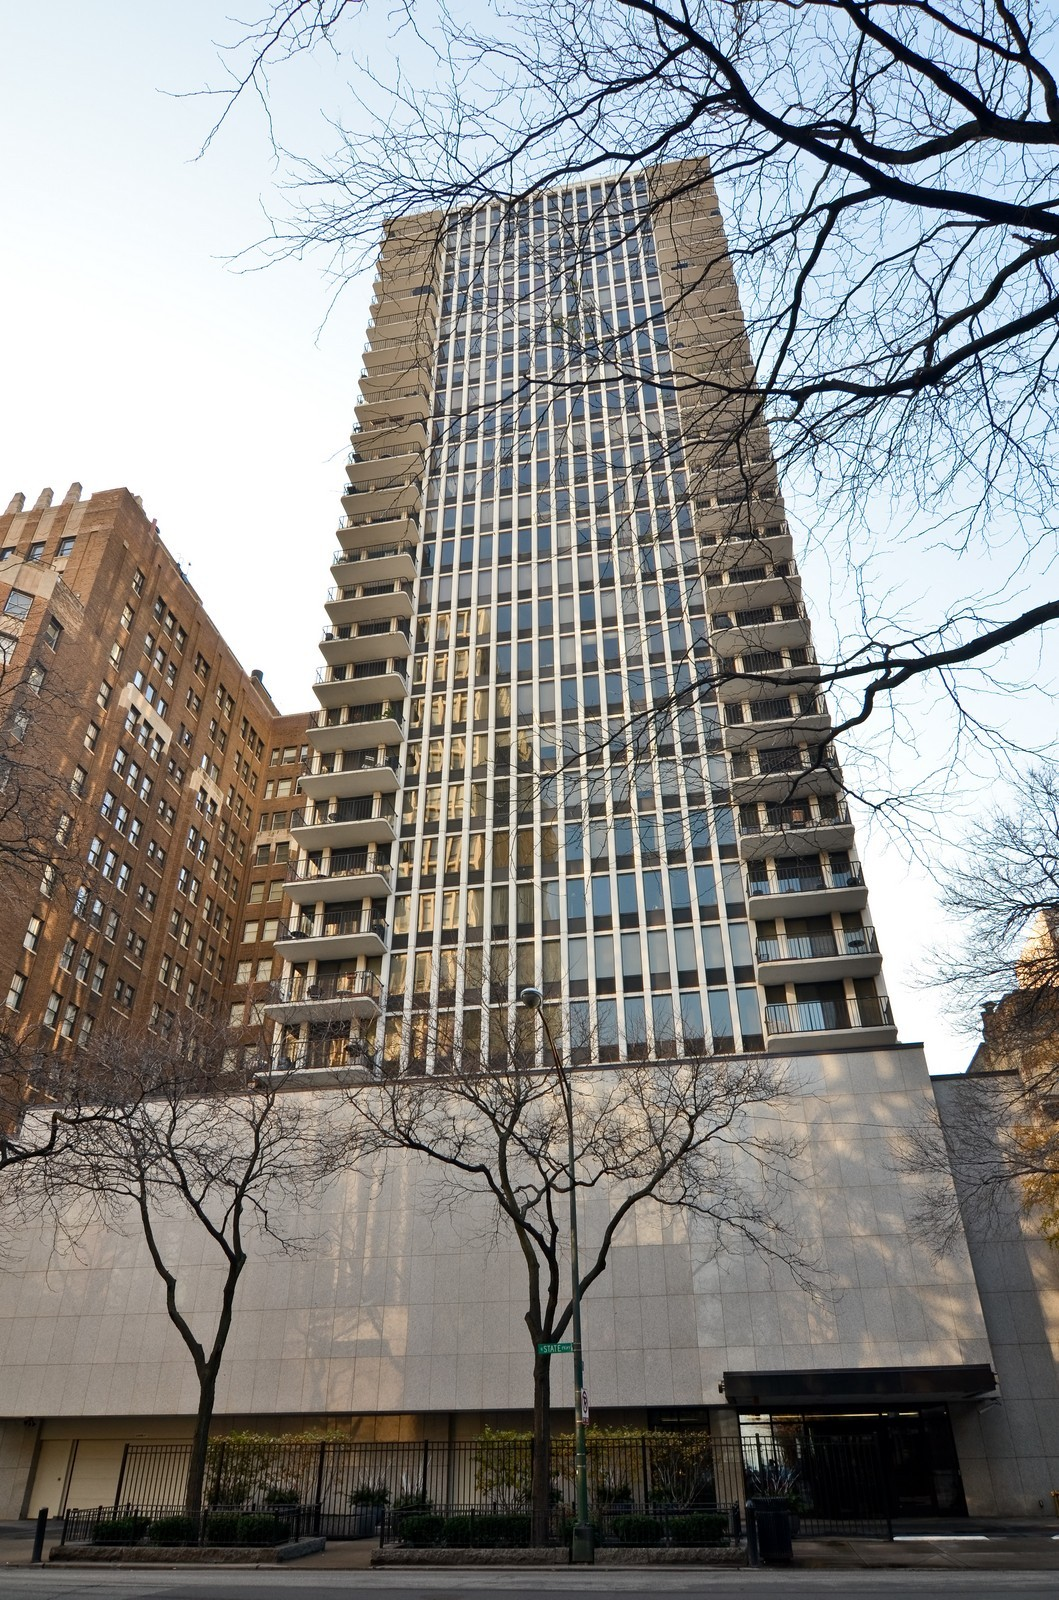 Real Estate Photography - 1230 N. State Parkway, Unit 26BC, Chicago, IL, 60610 - Exterior looking up from Scott Street